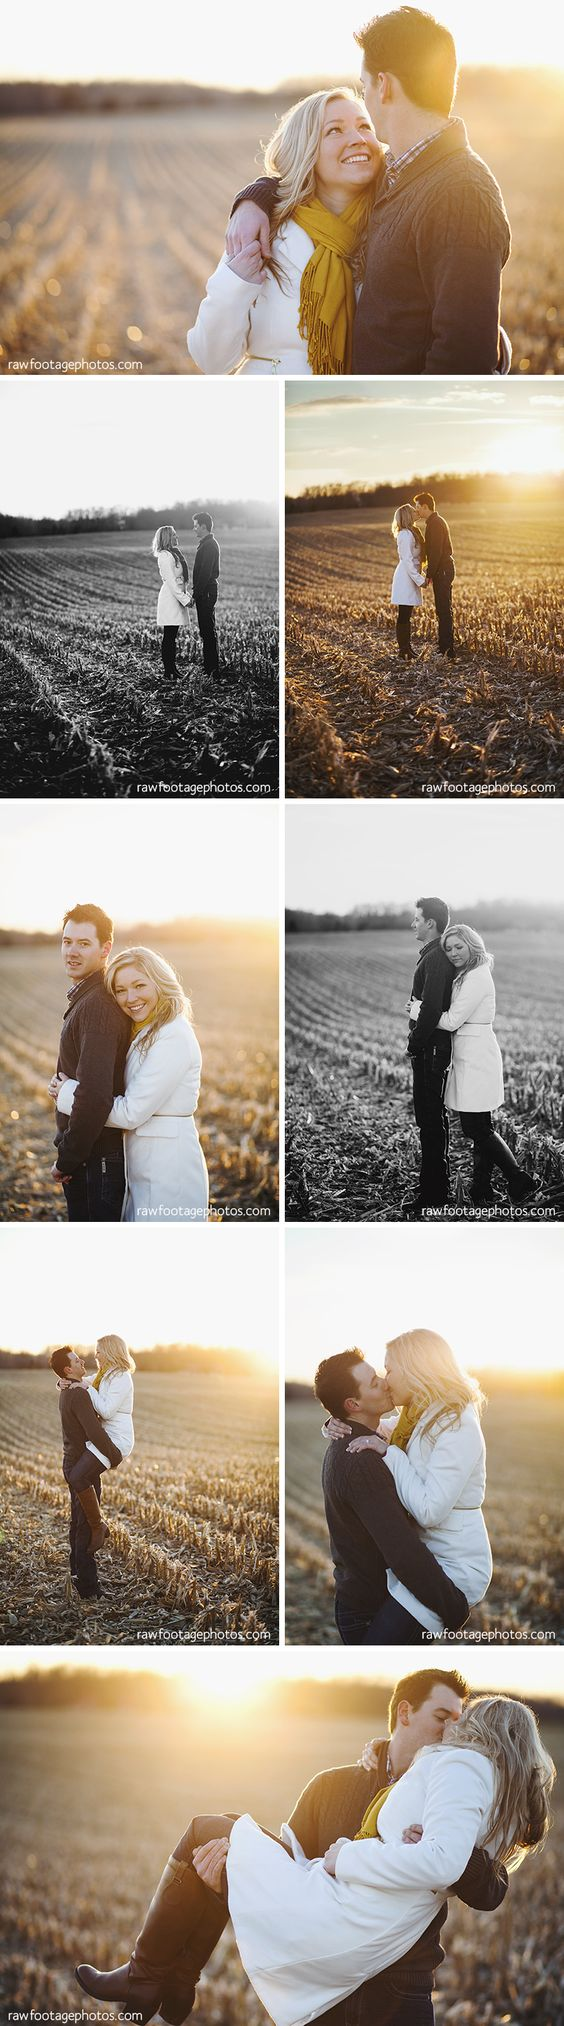 Raw Footage Photography - London Ontario Lifestyle Family and Wedding Photographer - Country Sunset Engagement Session